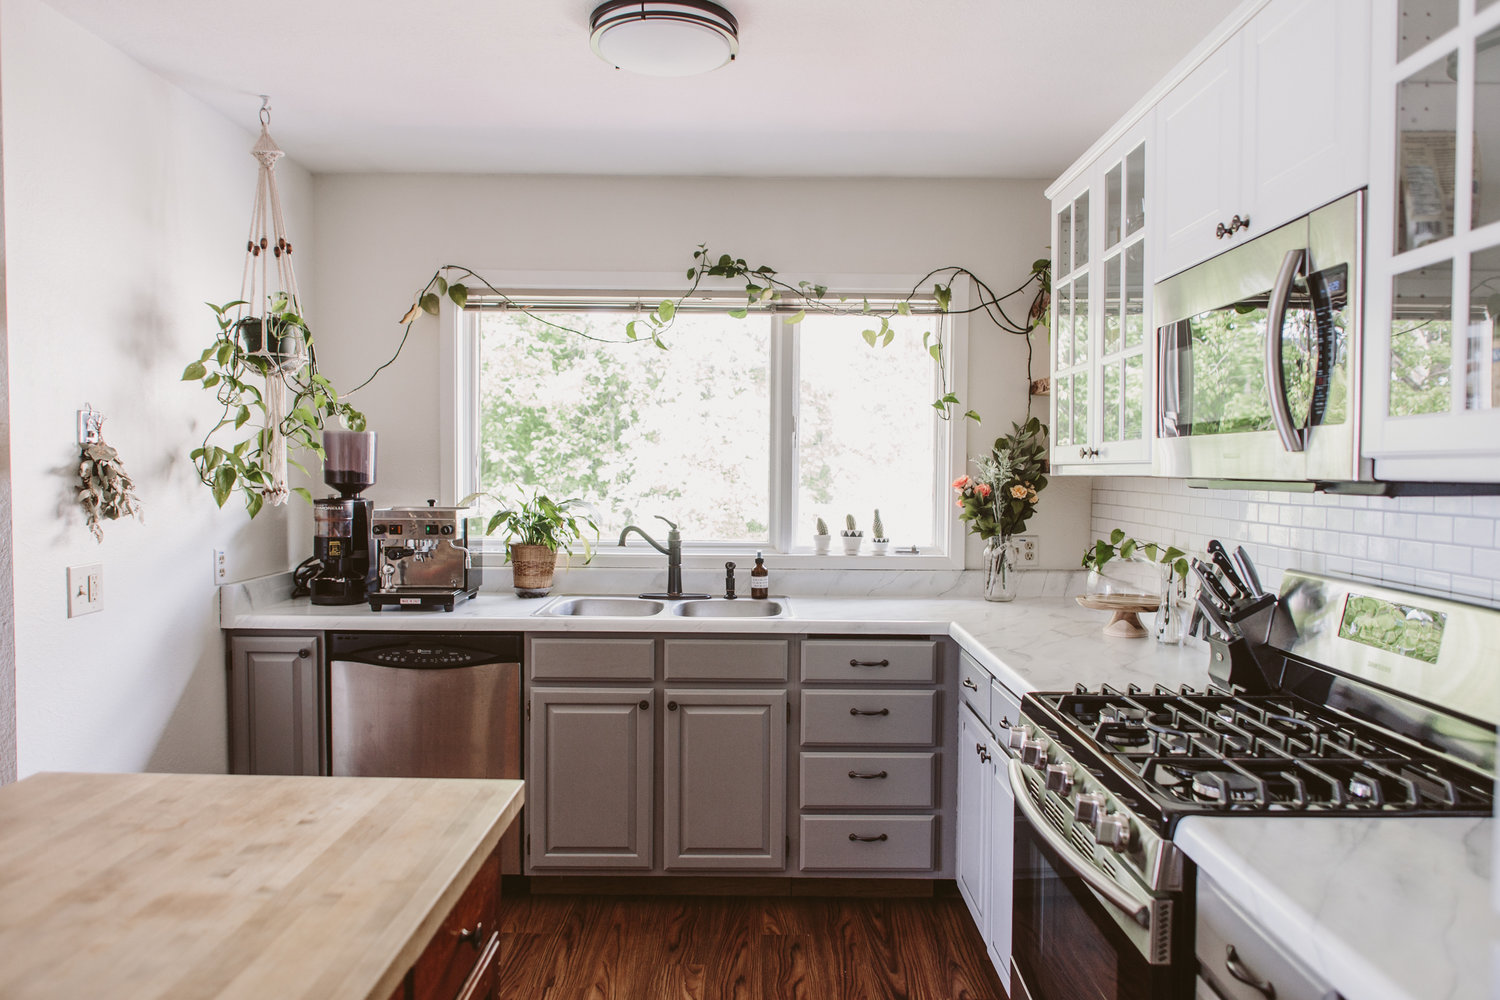 Our Apartment Kitchen Remodel — Liz Morrow